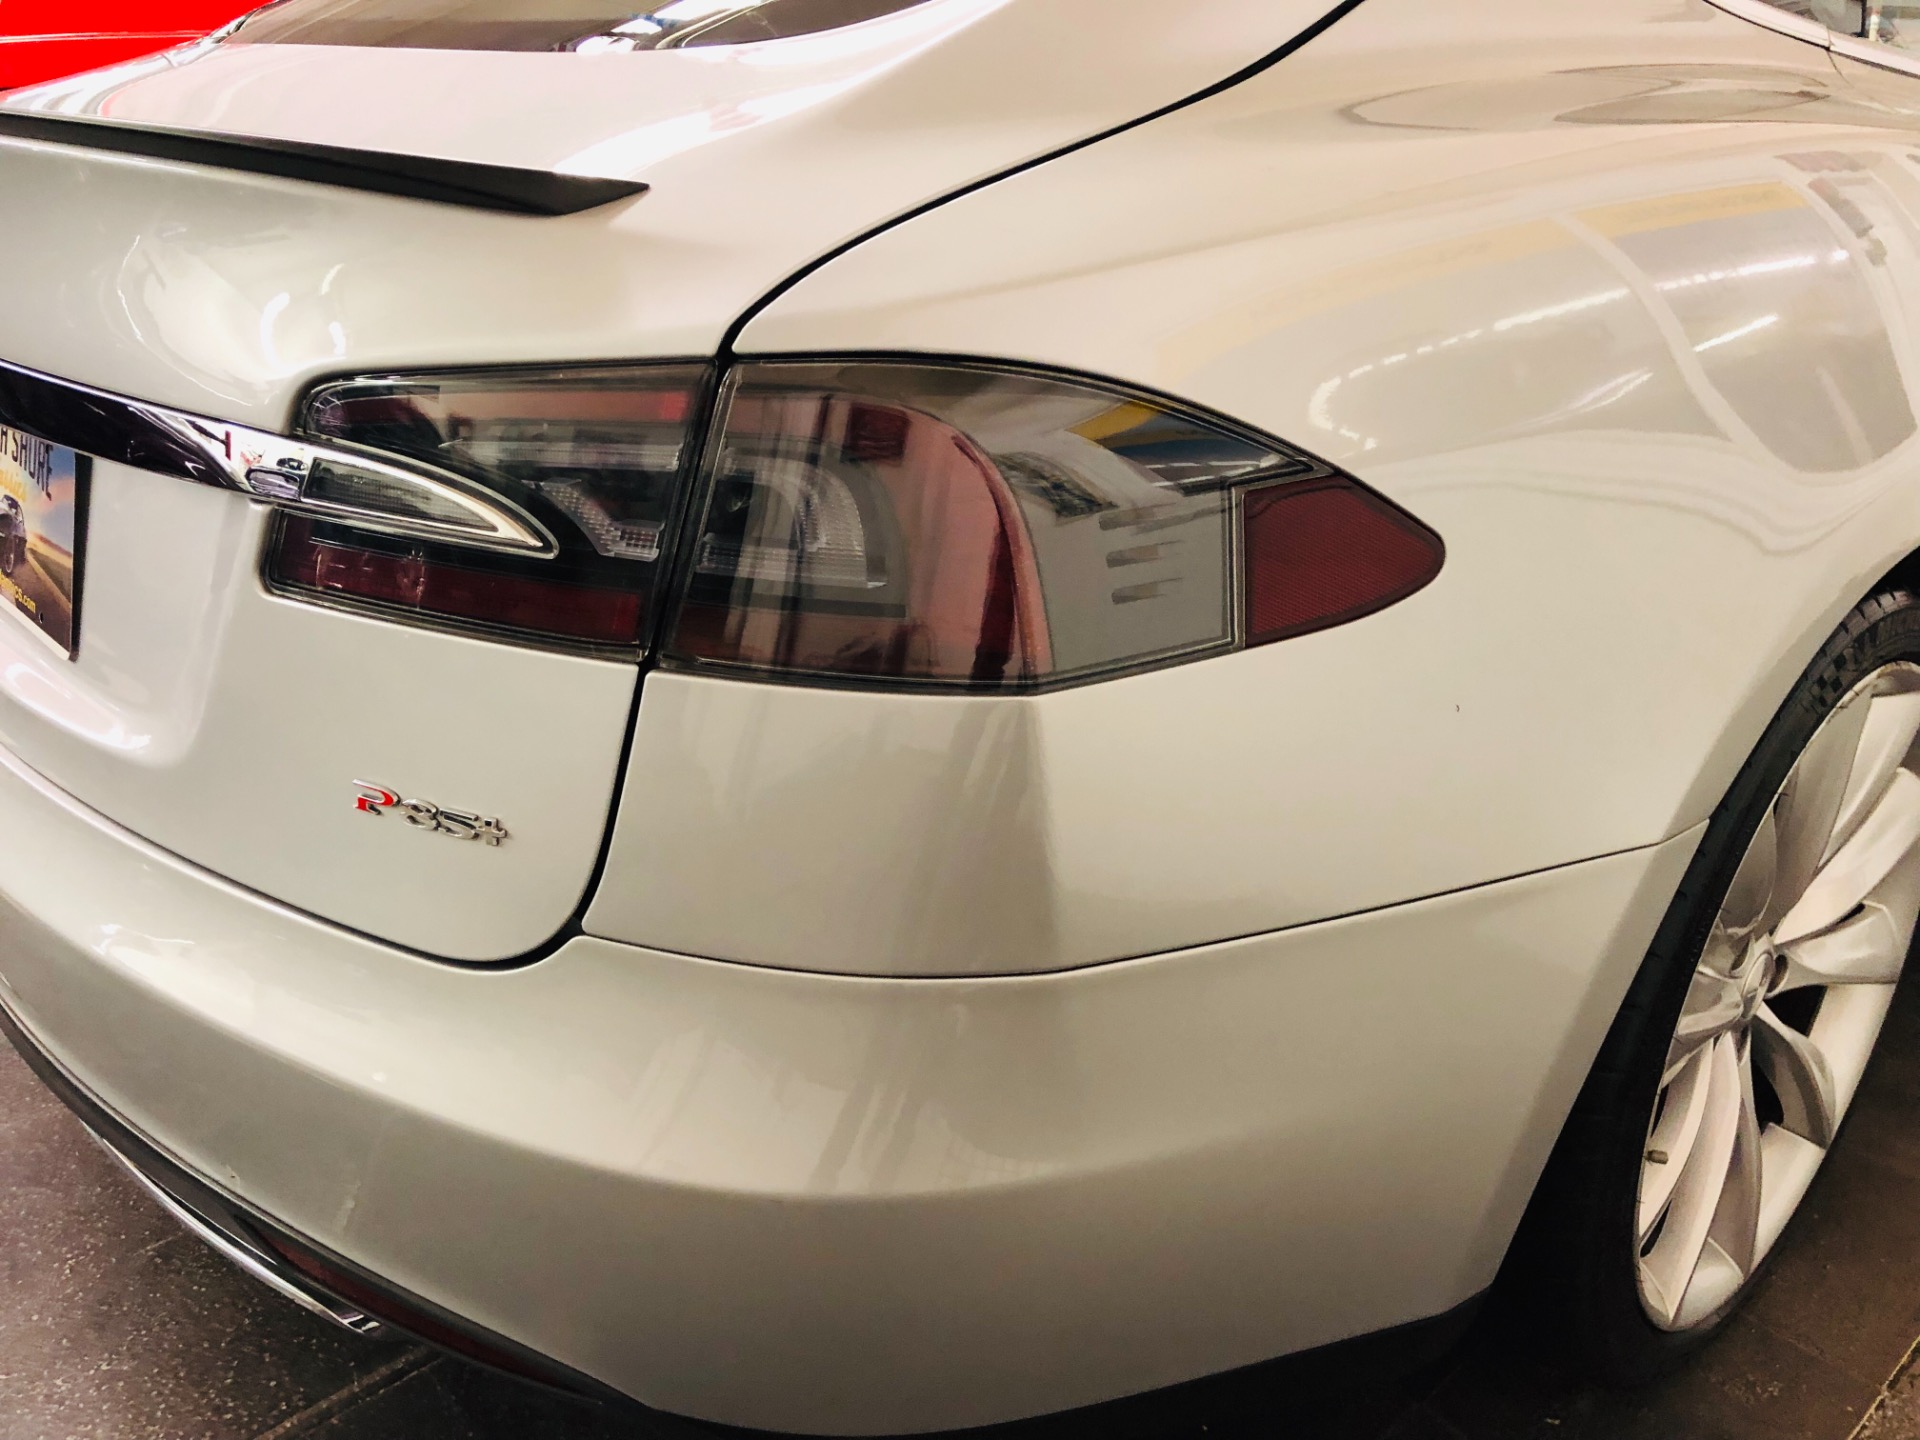 Used 2014 Tesla Model S P85+-ONLY 22,919 MILES-1 OWNER-CLEAN CARFAX-MSRP WAS $124,000- | Mundelein, IL